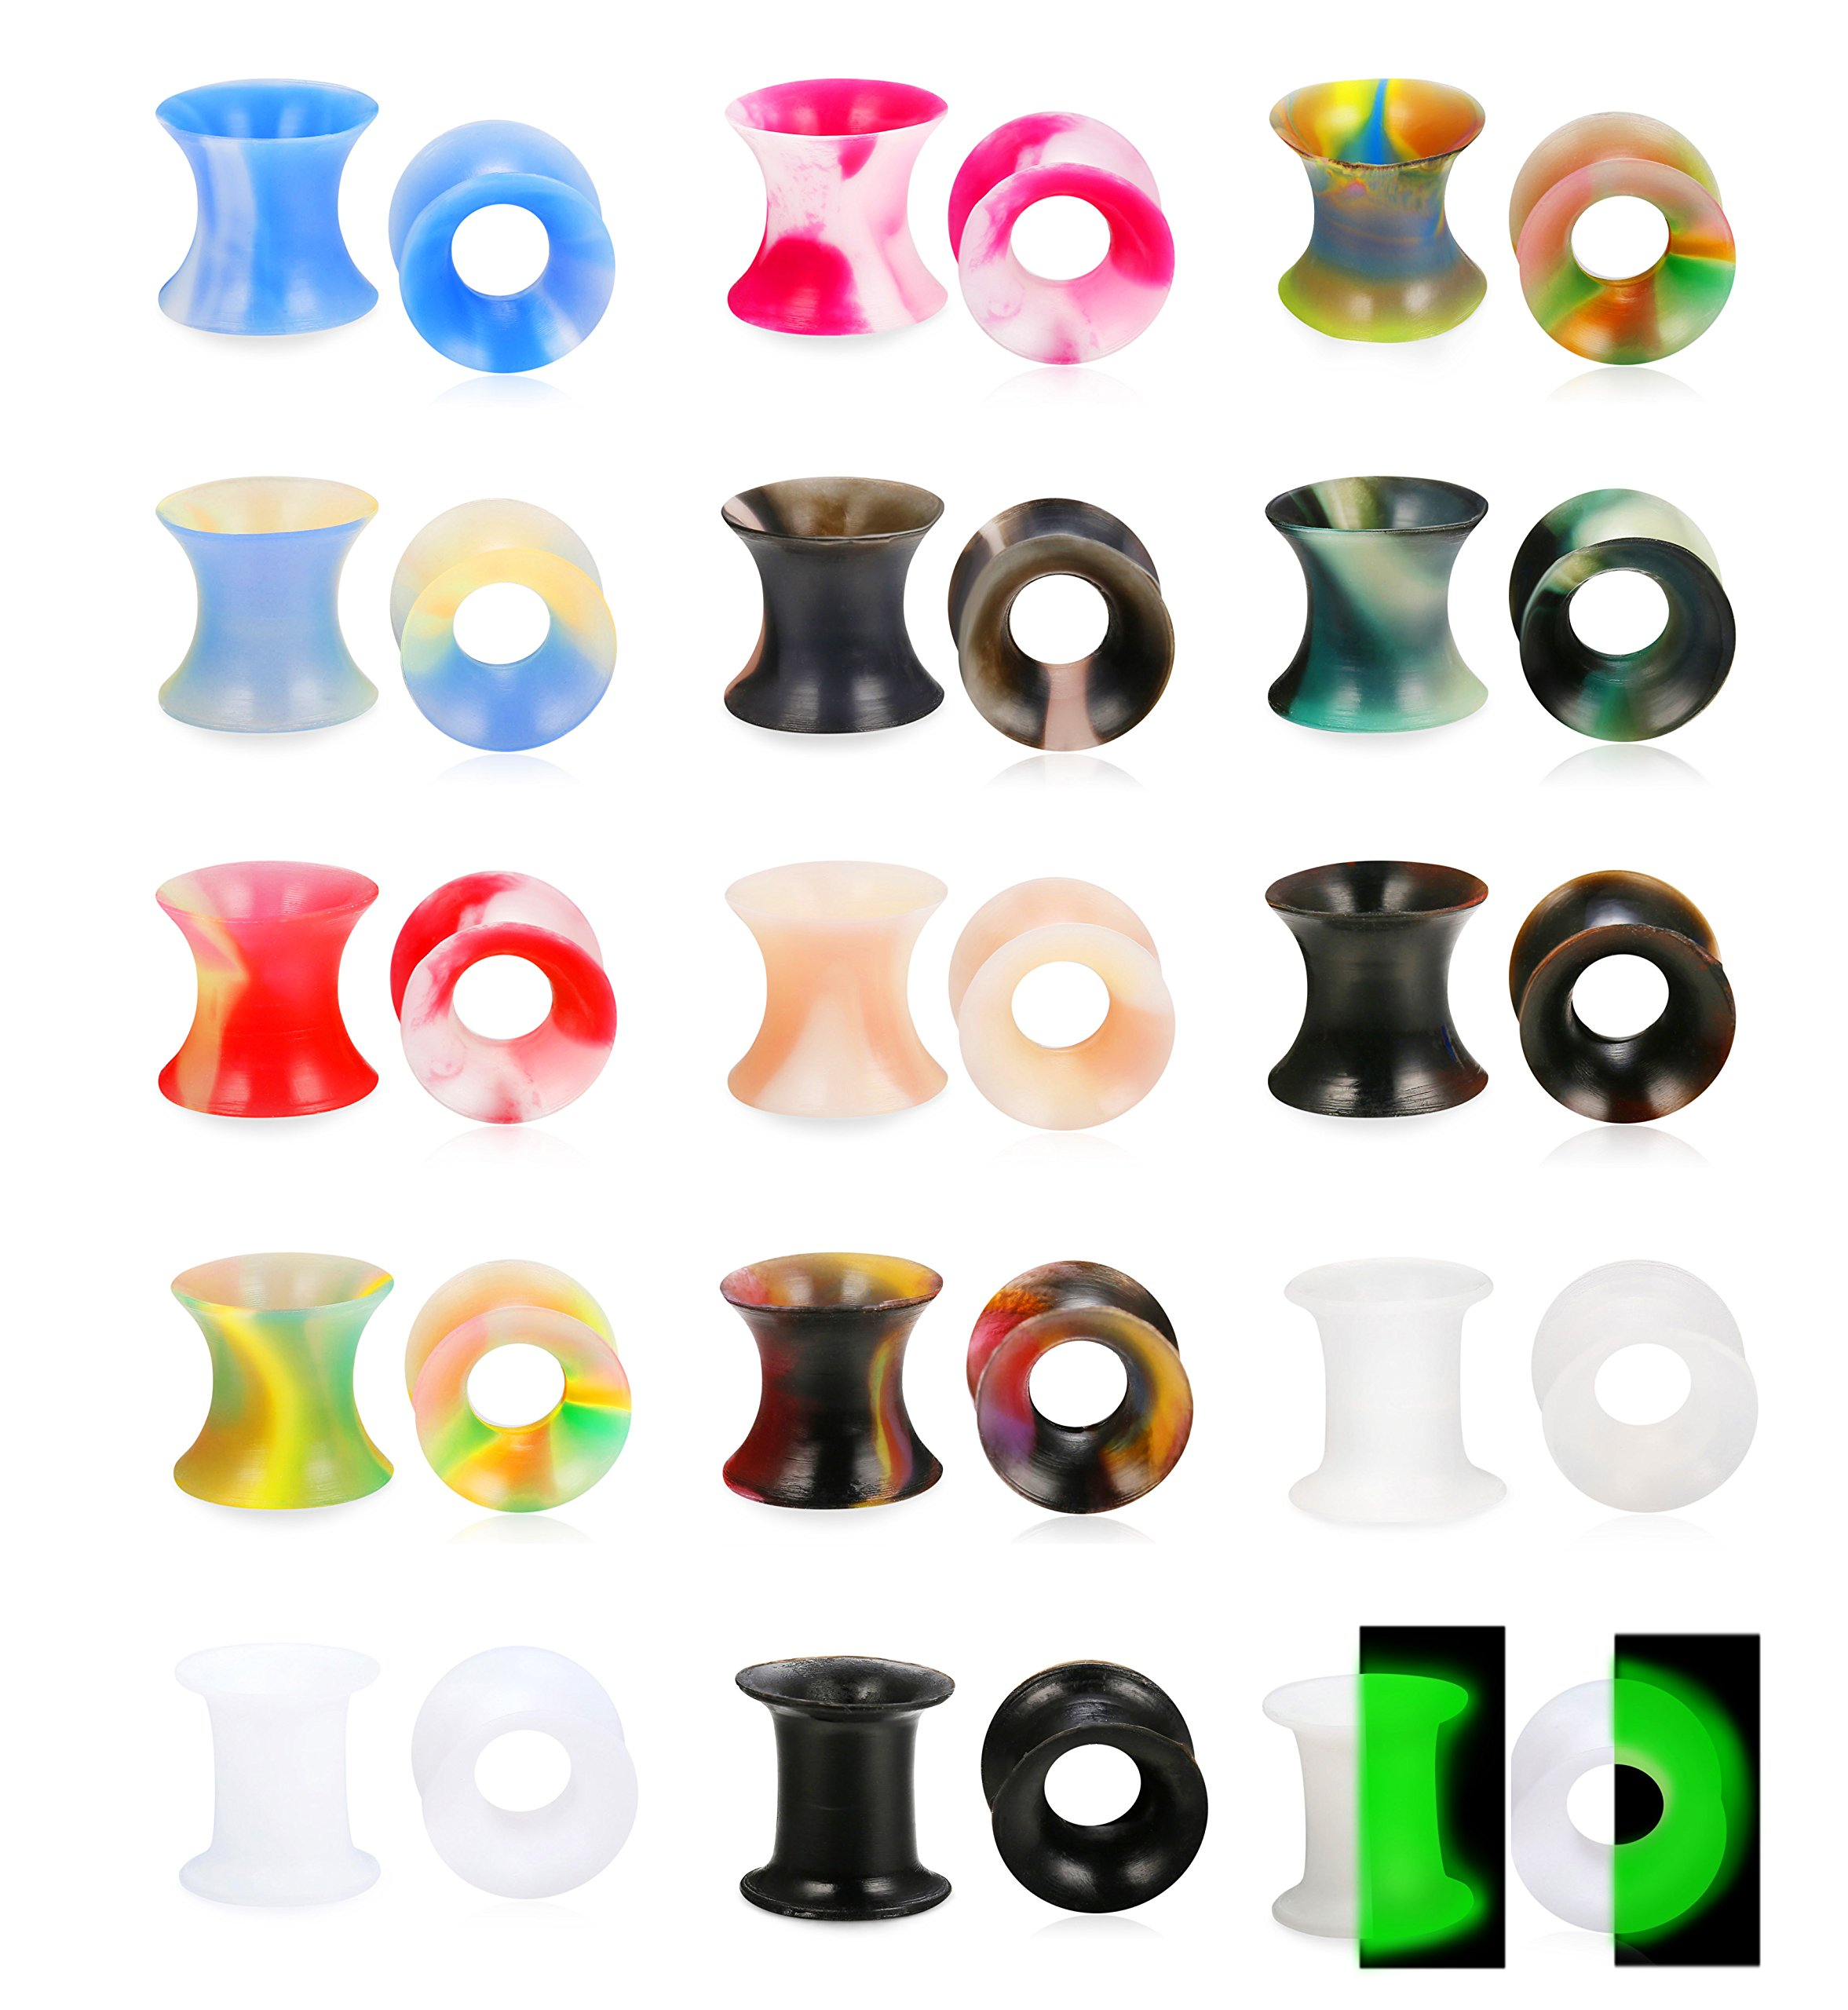 LOYALLOOK 30Pcs Soft Silicone Ear Gauges Flesh Tunnels Plugs Stretchers Expander Ear Piercing Jewelry Mixed Color Set Flexible Thin Ear Plugs 10mm